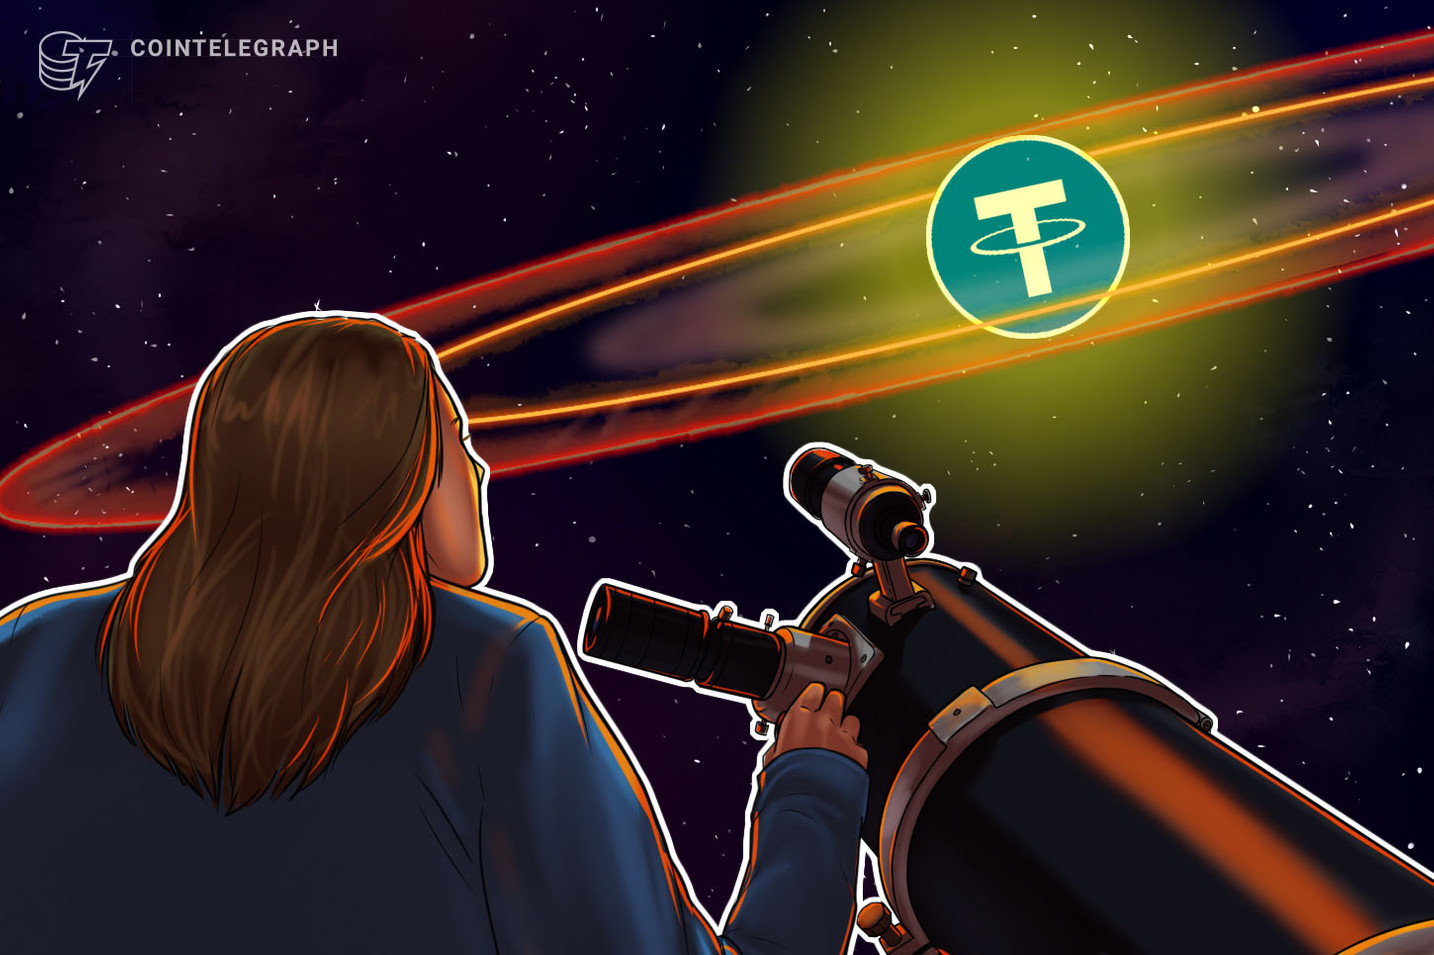 Tether CTO to Tell the Story of USDT Stablecoin at Upcoming Conference